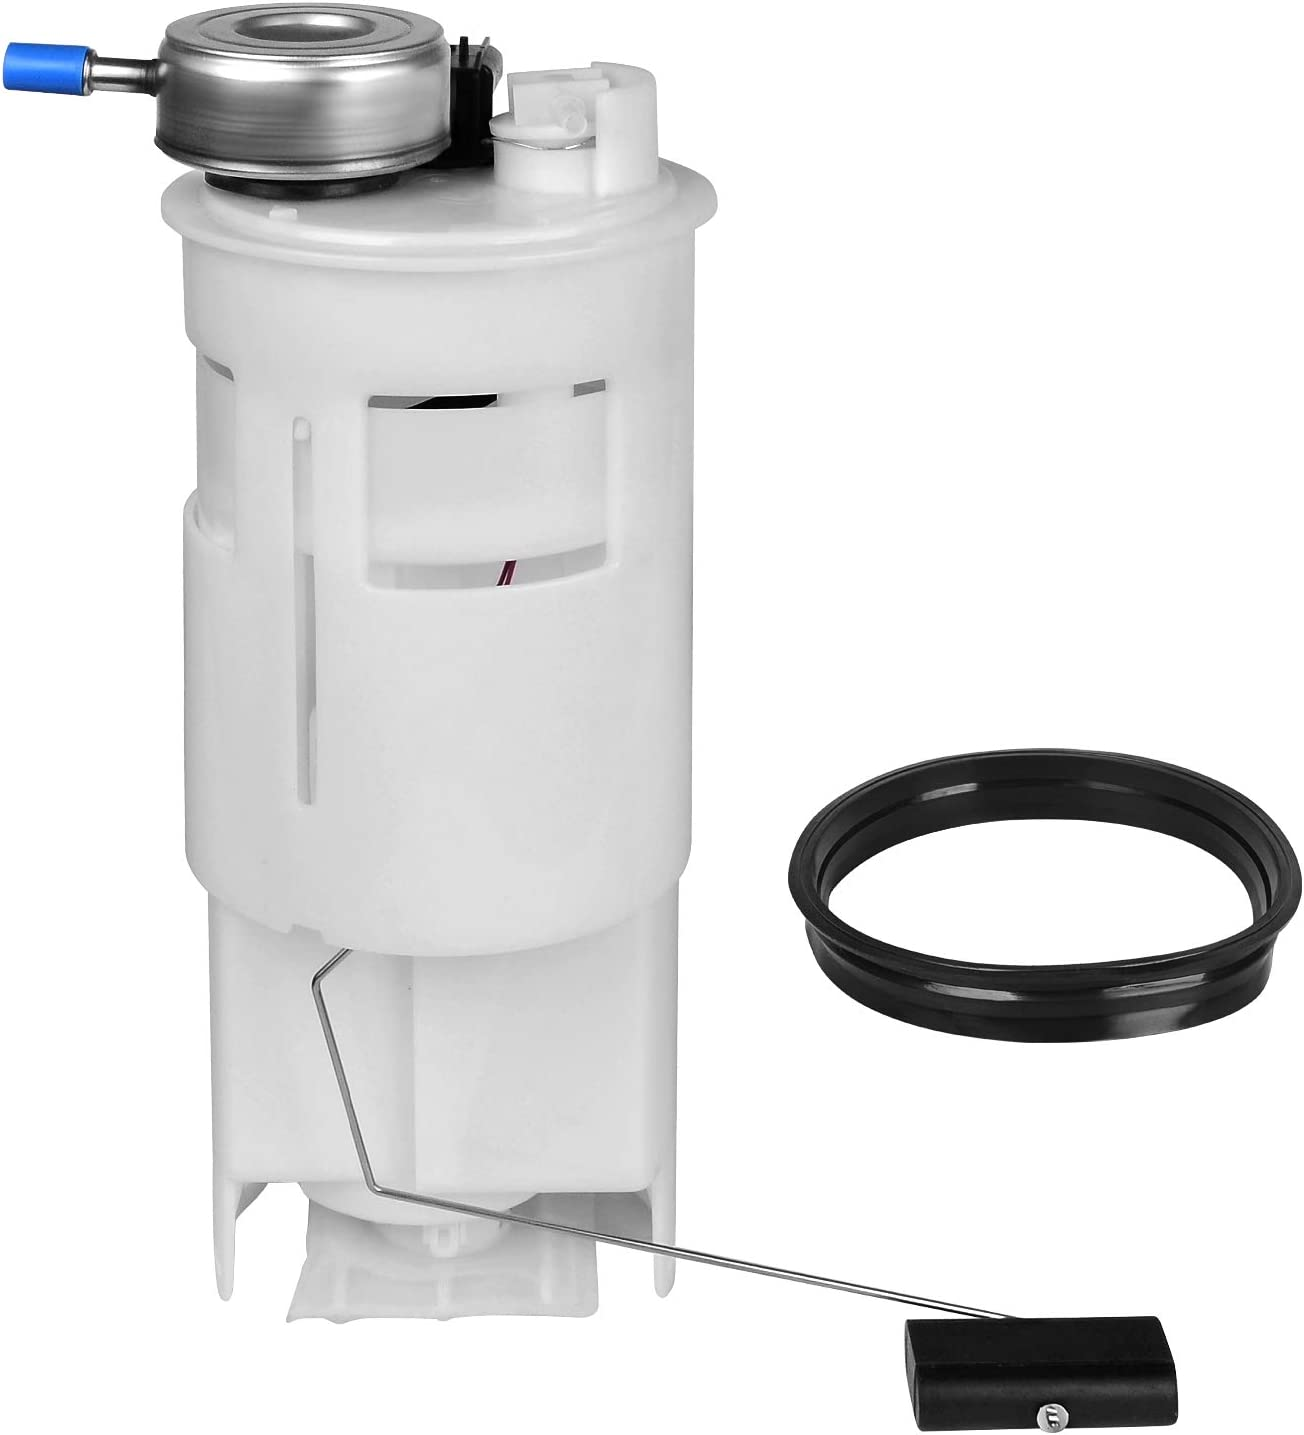 DWVO Fuel Pump Compatible with 1998-2002 Dodge Ram 1500 2500 3500 3.9L 5.2L 5.9L 8.0L w/ 26 Gal. 34 Gal. Tank